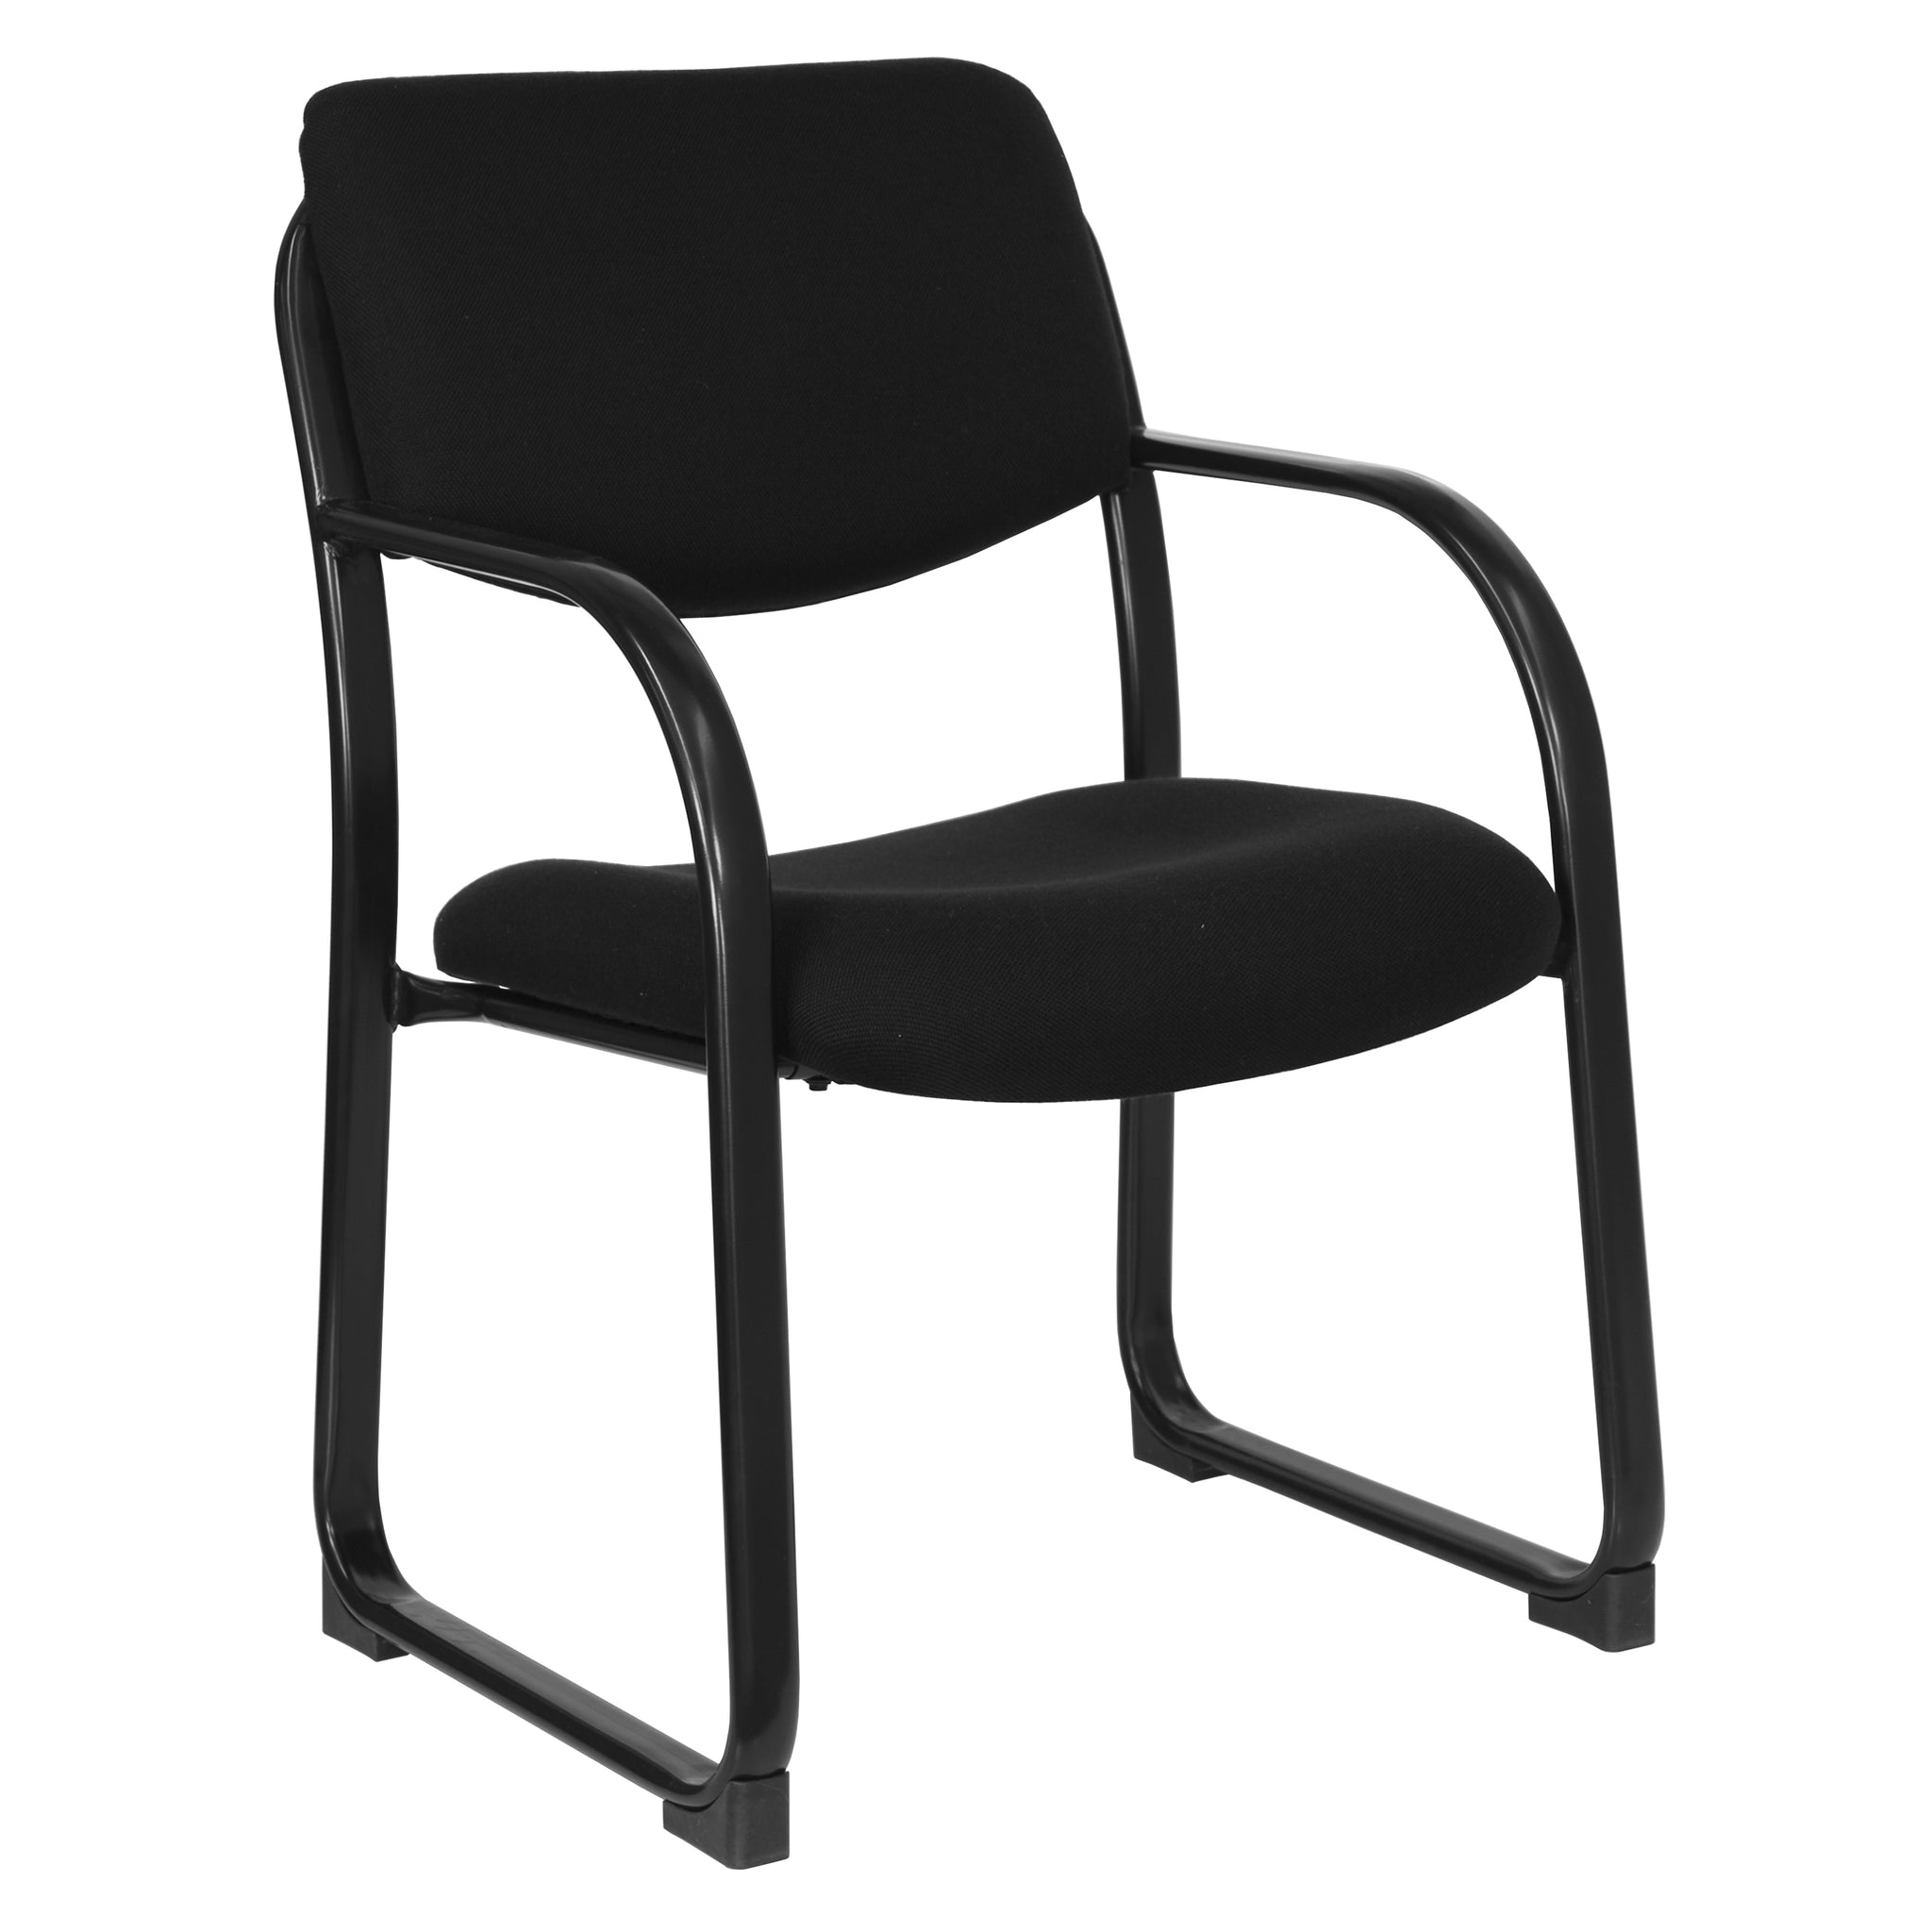 Fabric Executive Side Chair with Sled Base: Black